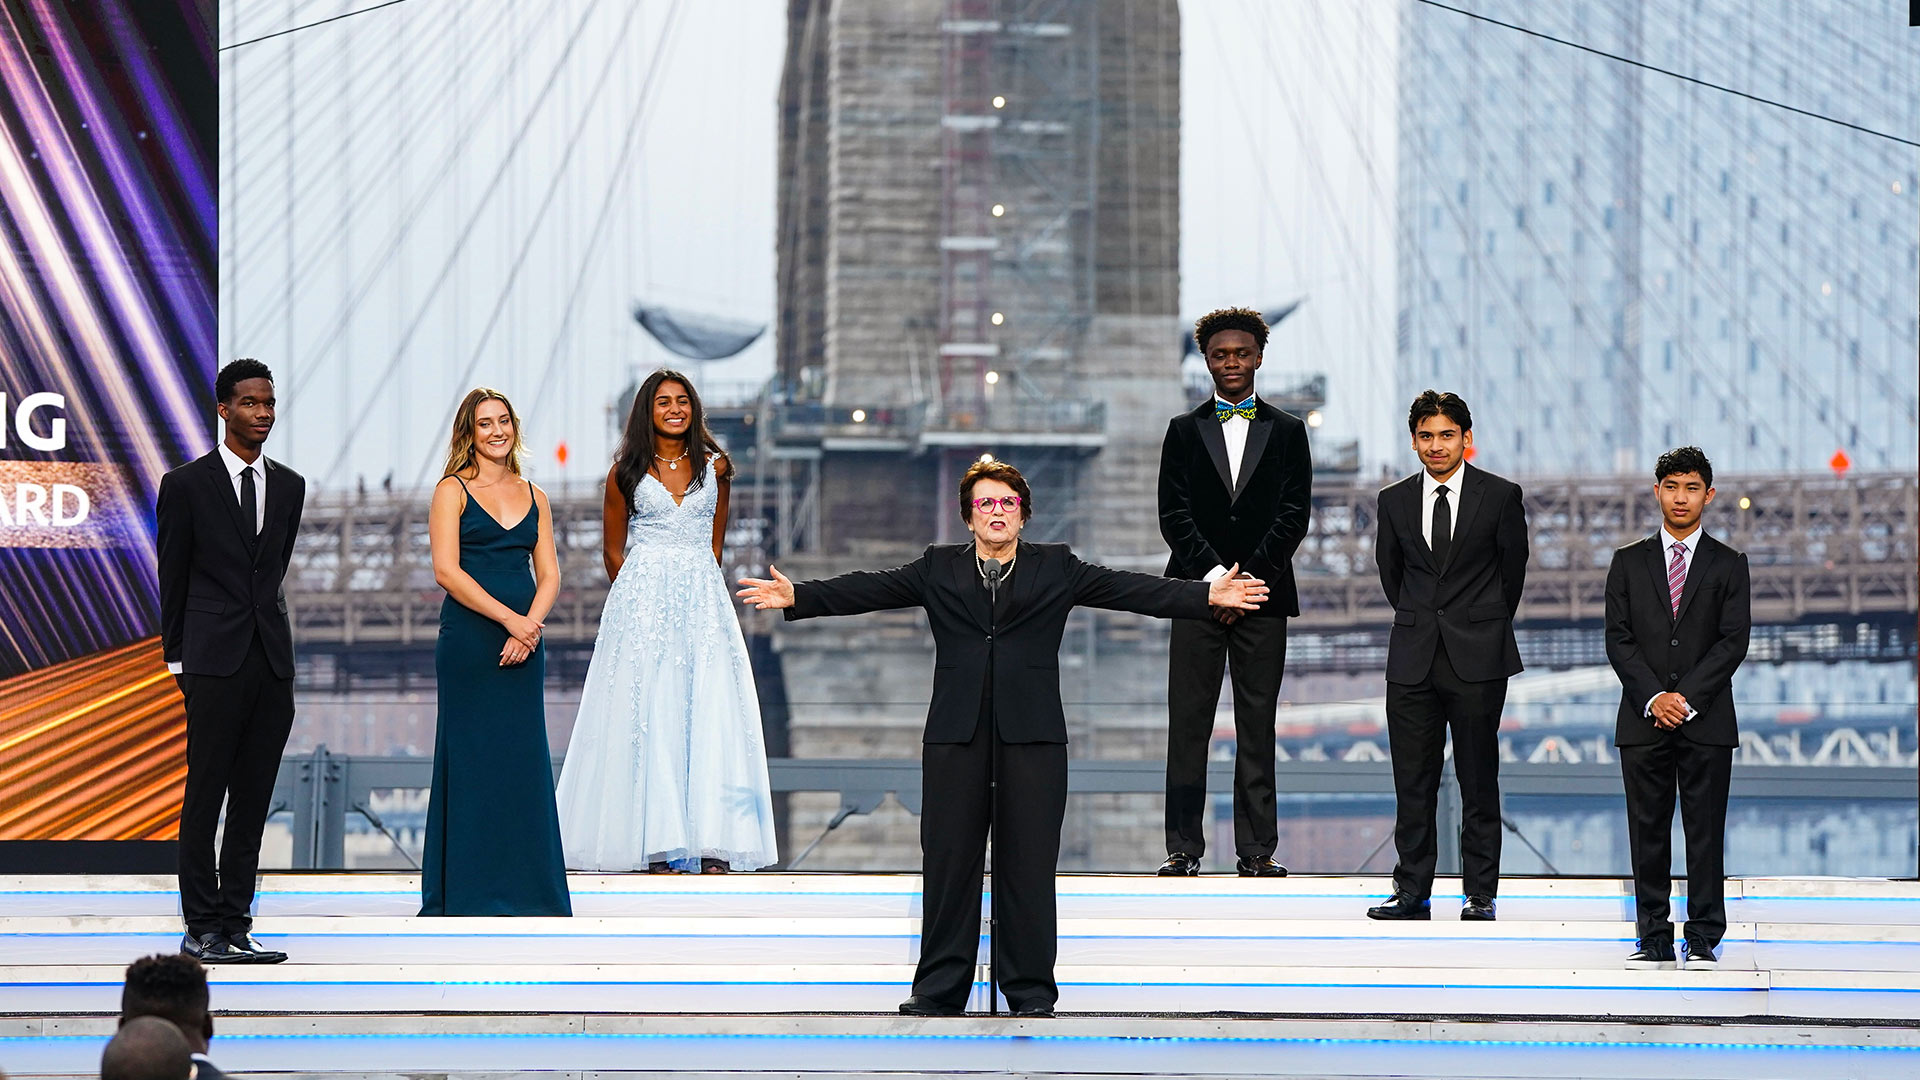 Holly Wilson '21 (second from left) stands onstage with the five other winners of the Billie Jean King Youth Leadership Award and the award's namesake (center) at ESPN's seventh annual Sports Humanitarian Awards, held at The Rooftop at Pier 17 in New York City. Wilson was recognized for her work coaching and mentoring refugee youth in the D.C. area through L.A.C.E.S. (below). (Photos by ESPN Images)